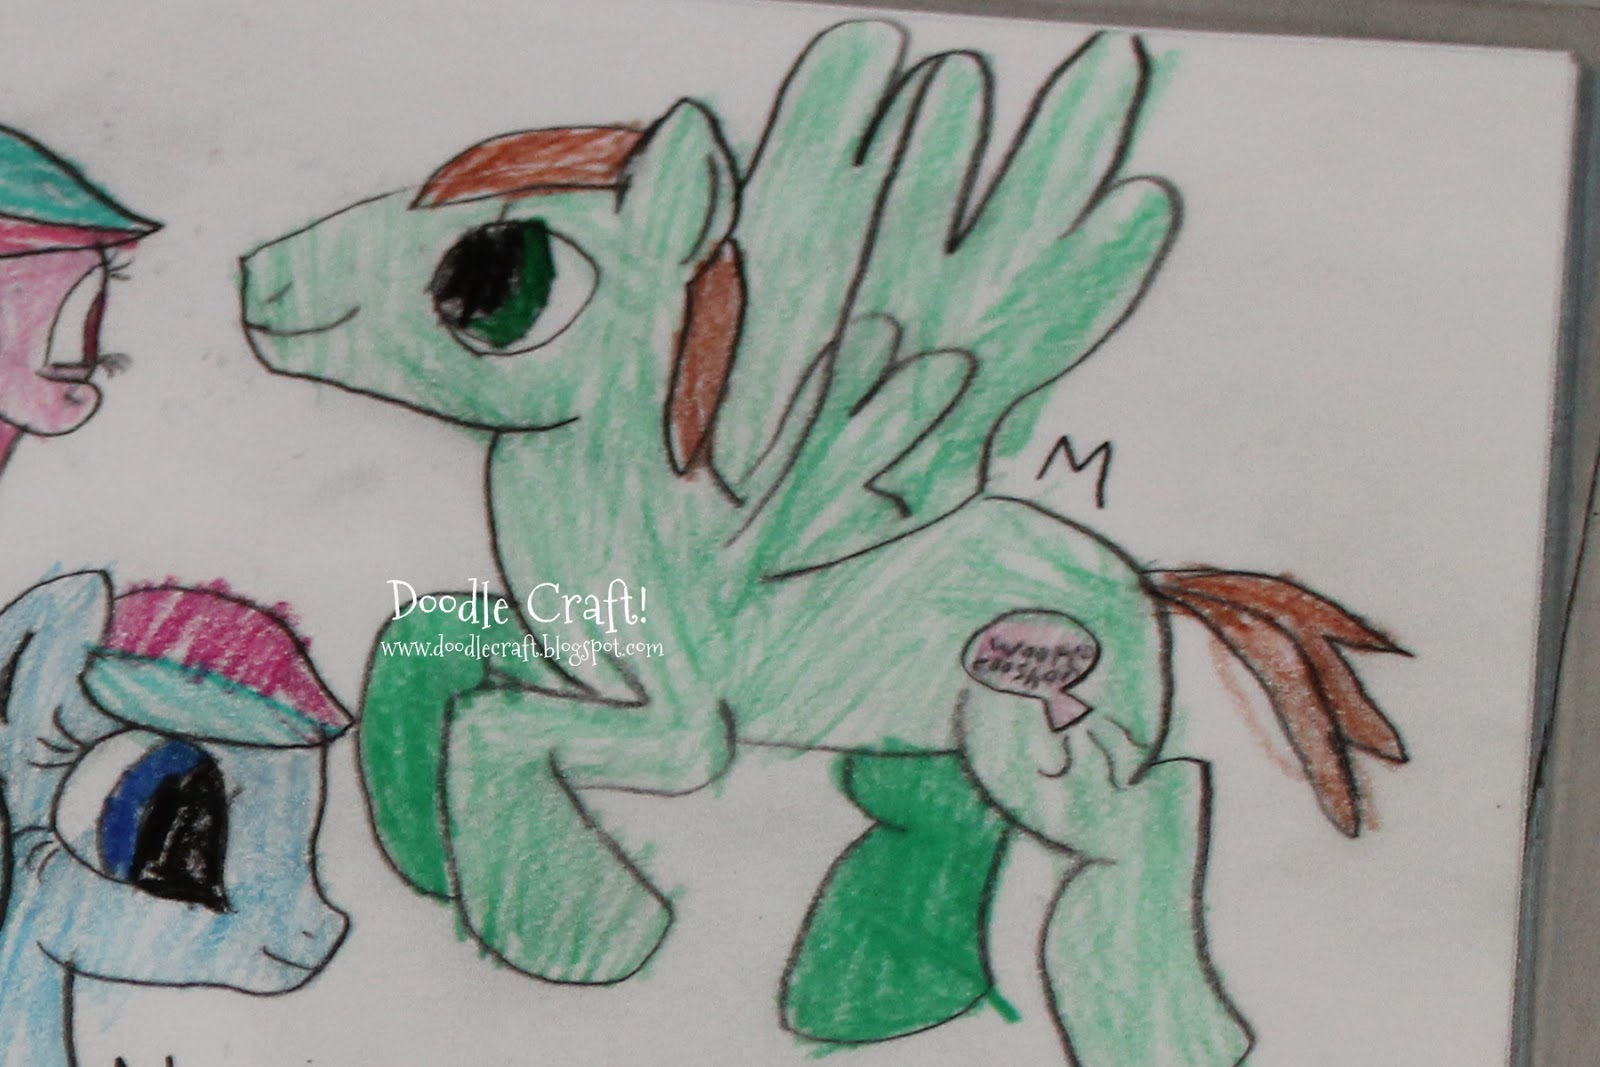 Drawn my little pony own Own Doodlecraft: My and Little